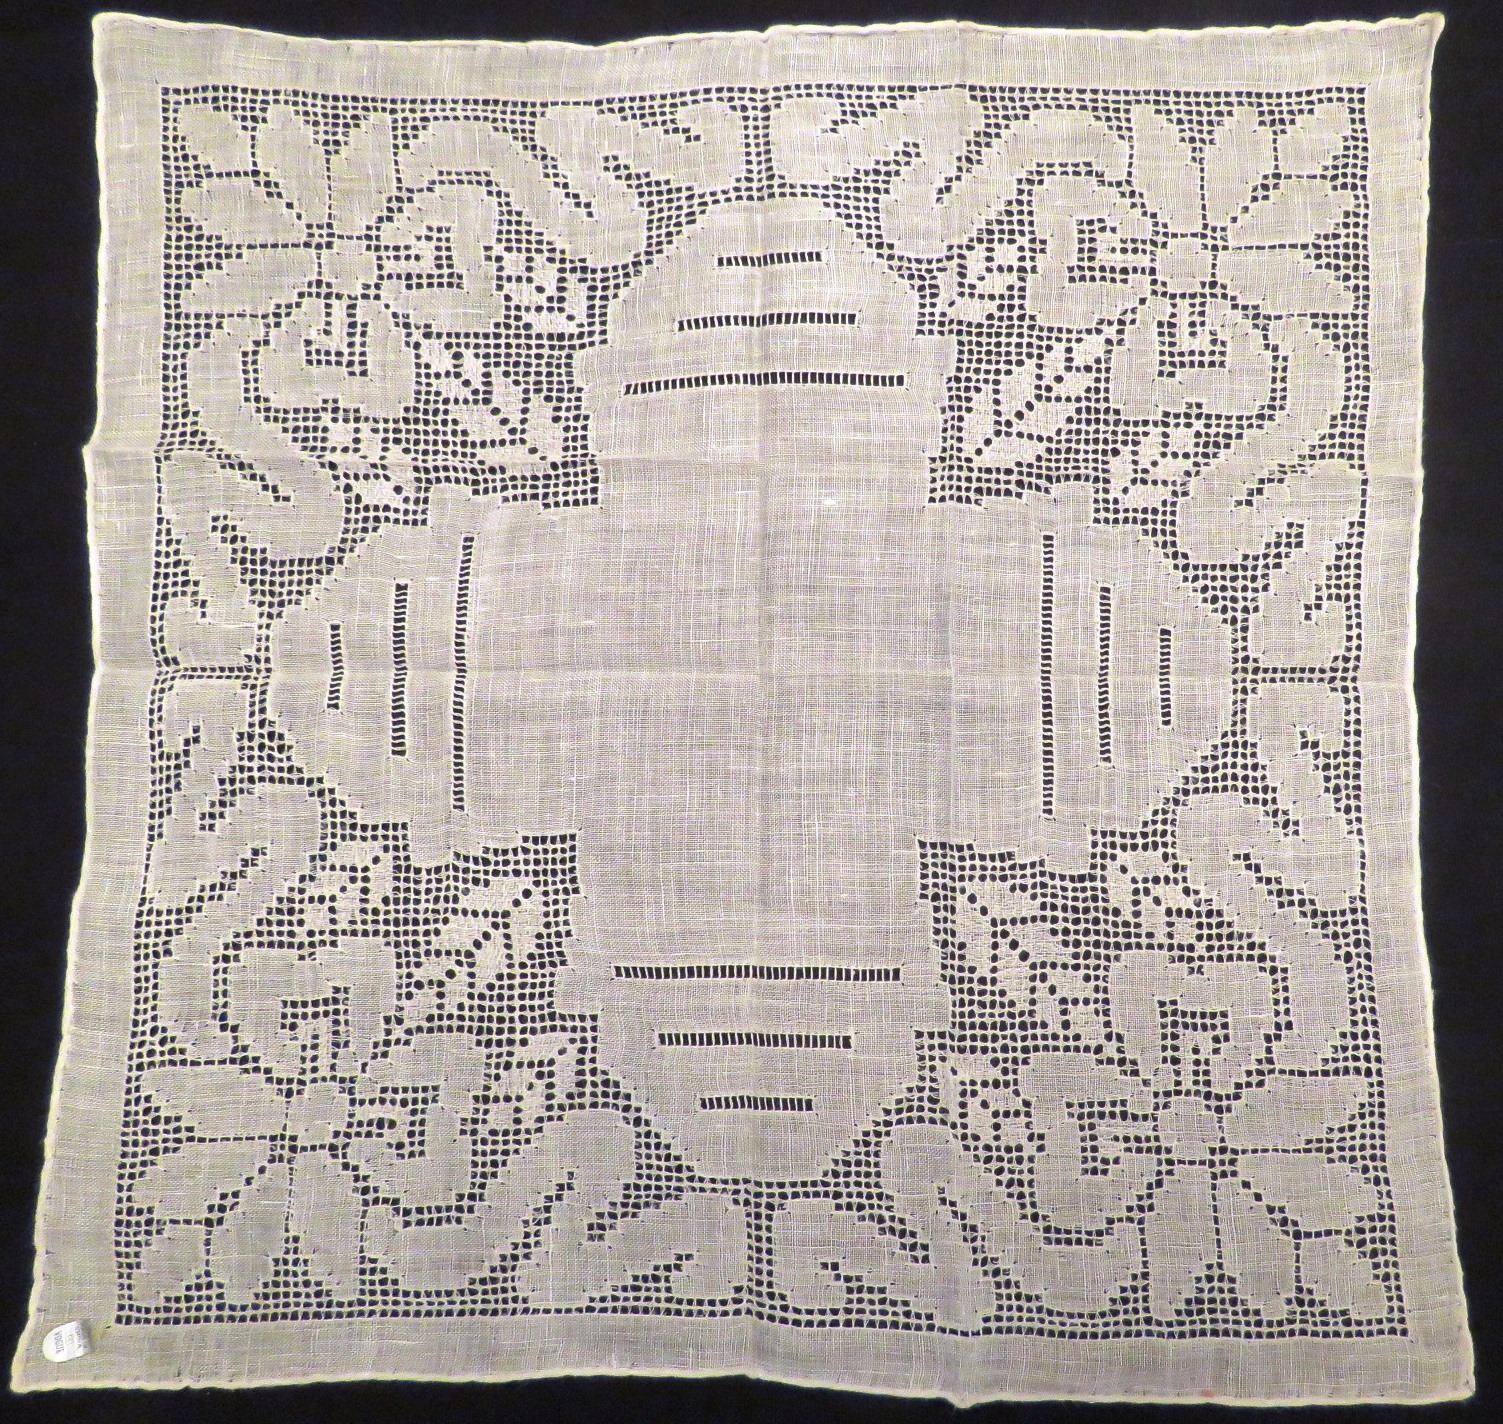 Vintage Linen Handkerchief White Wedding Bridal Hankie New Label Art Deco Pierced  Drawnwork (LAC-304) in Lace